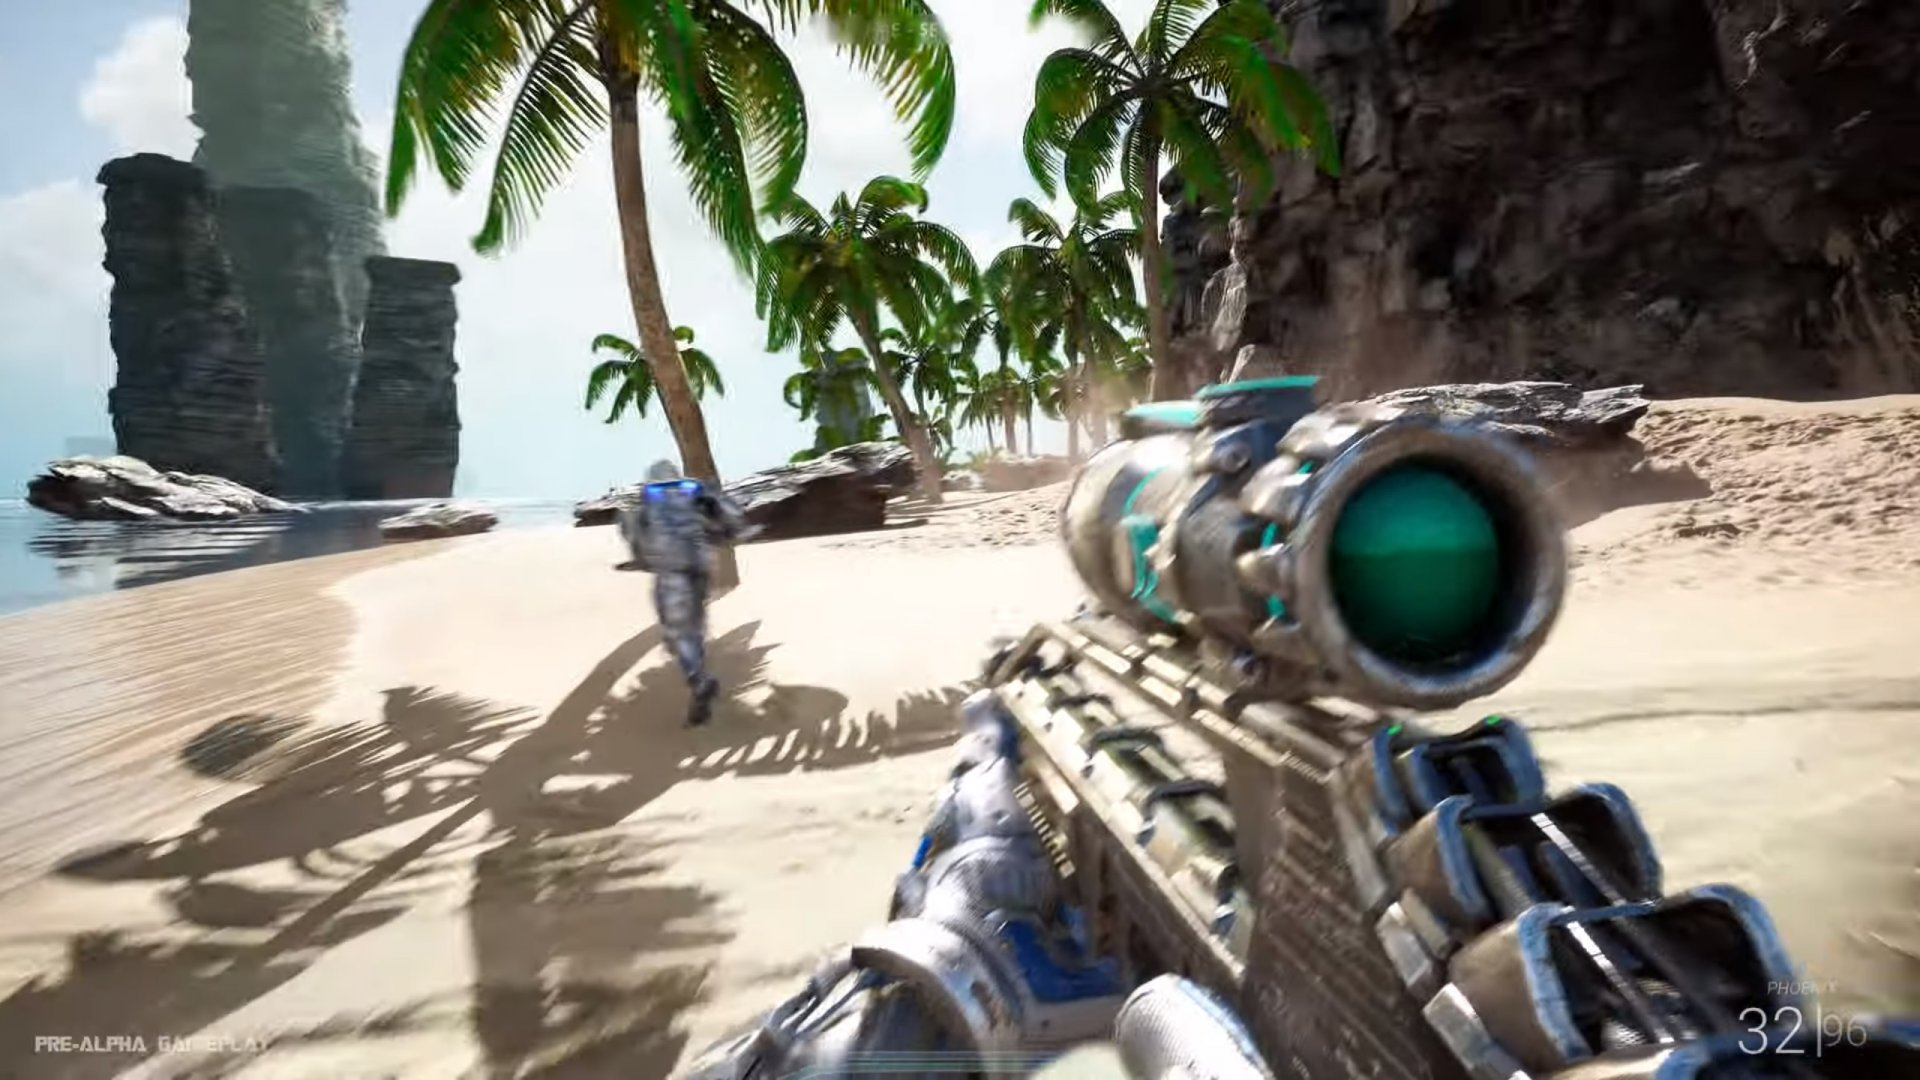 EXOMECHA is a new free to play first-person shooter, coming to PC in 2021 - DSOGaming